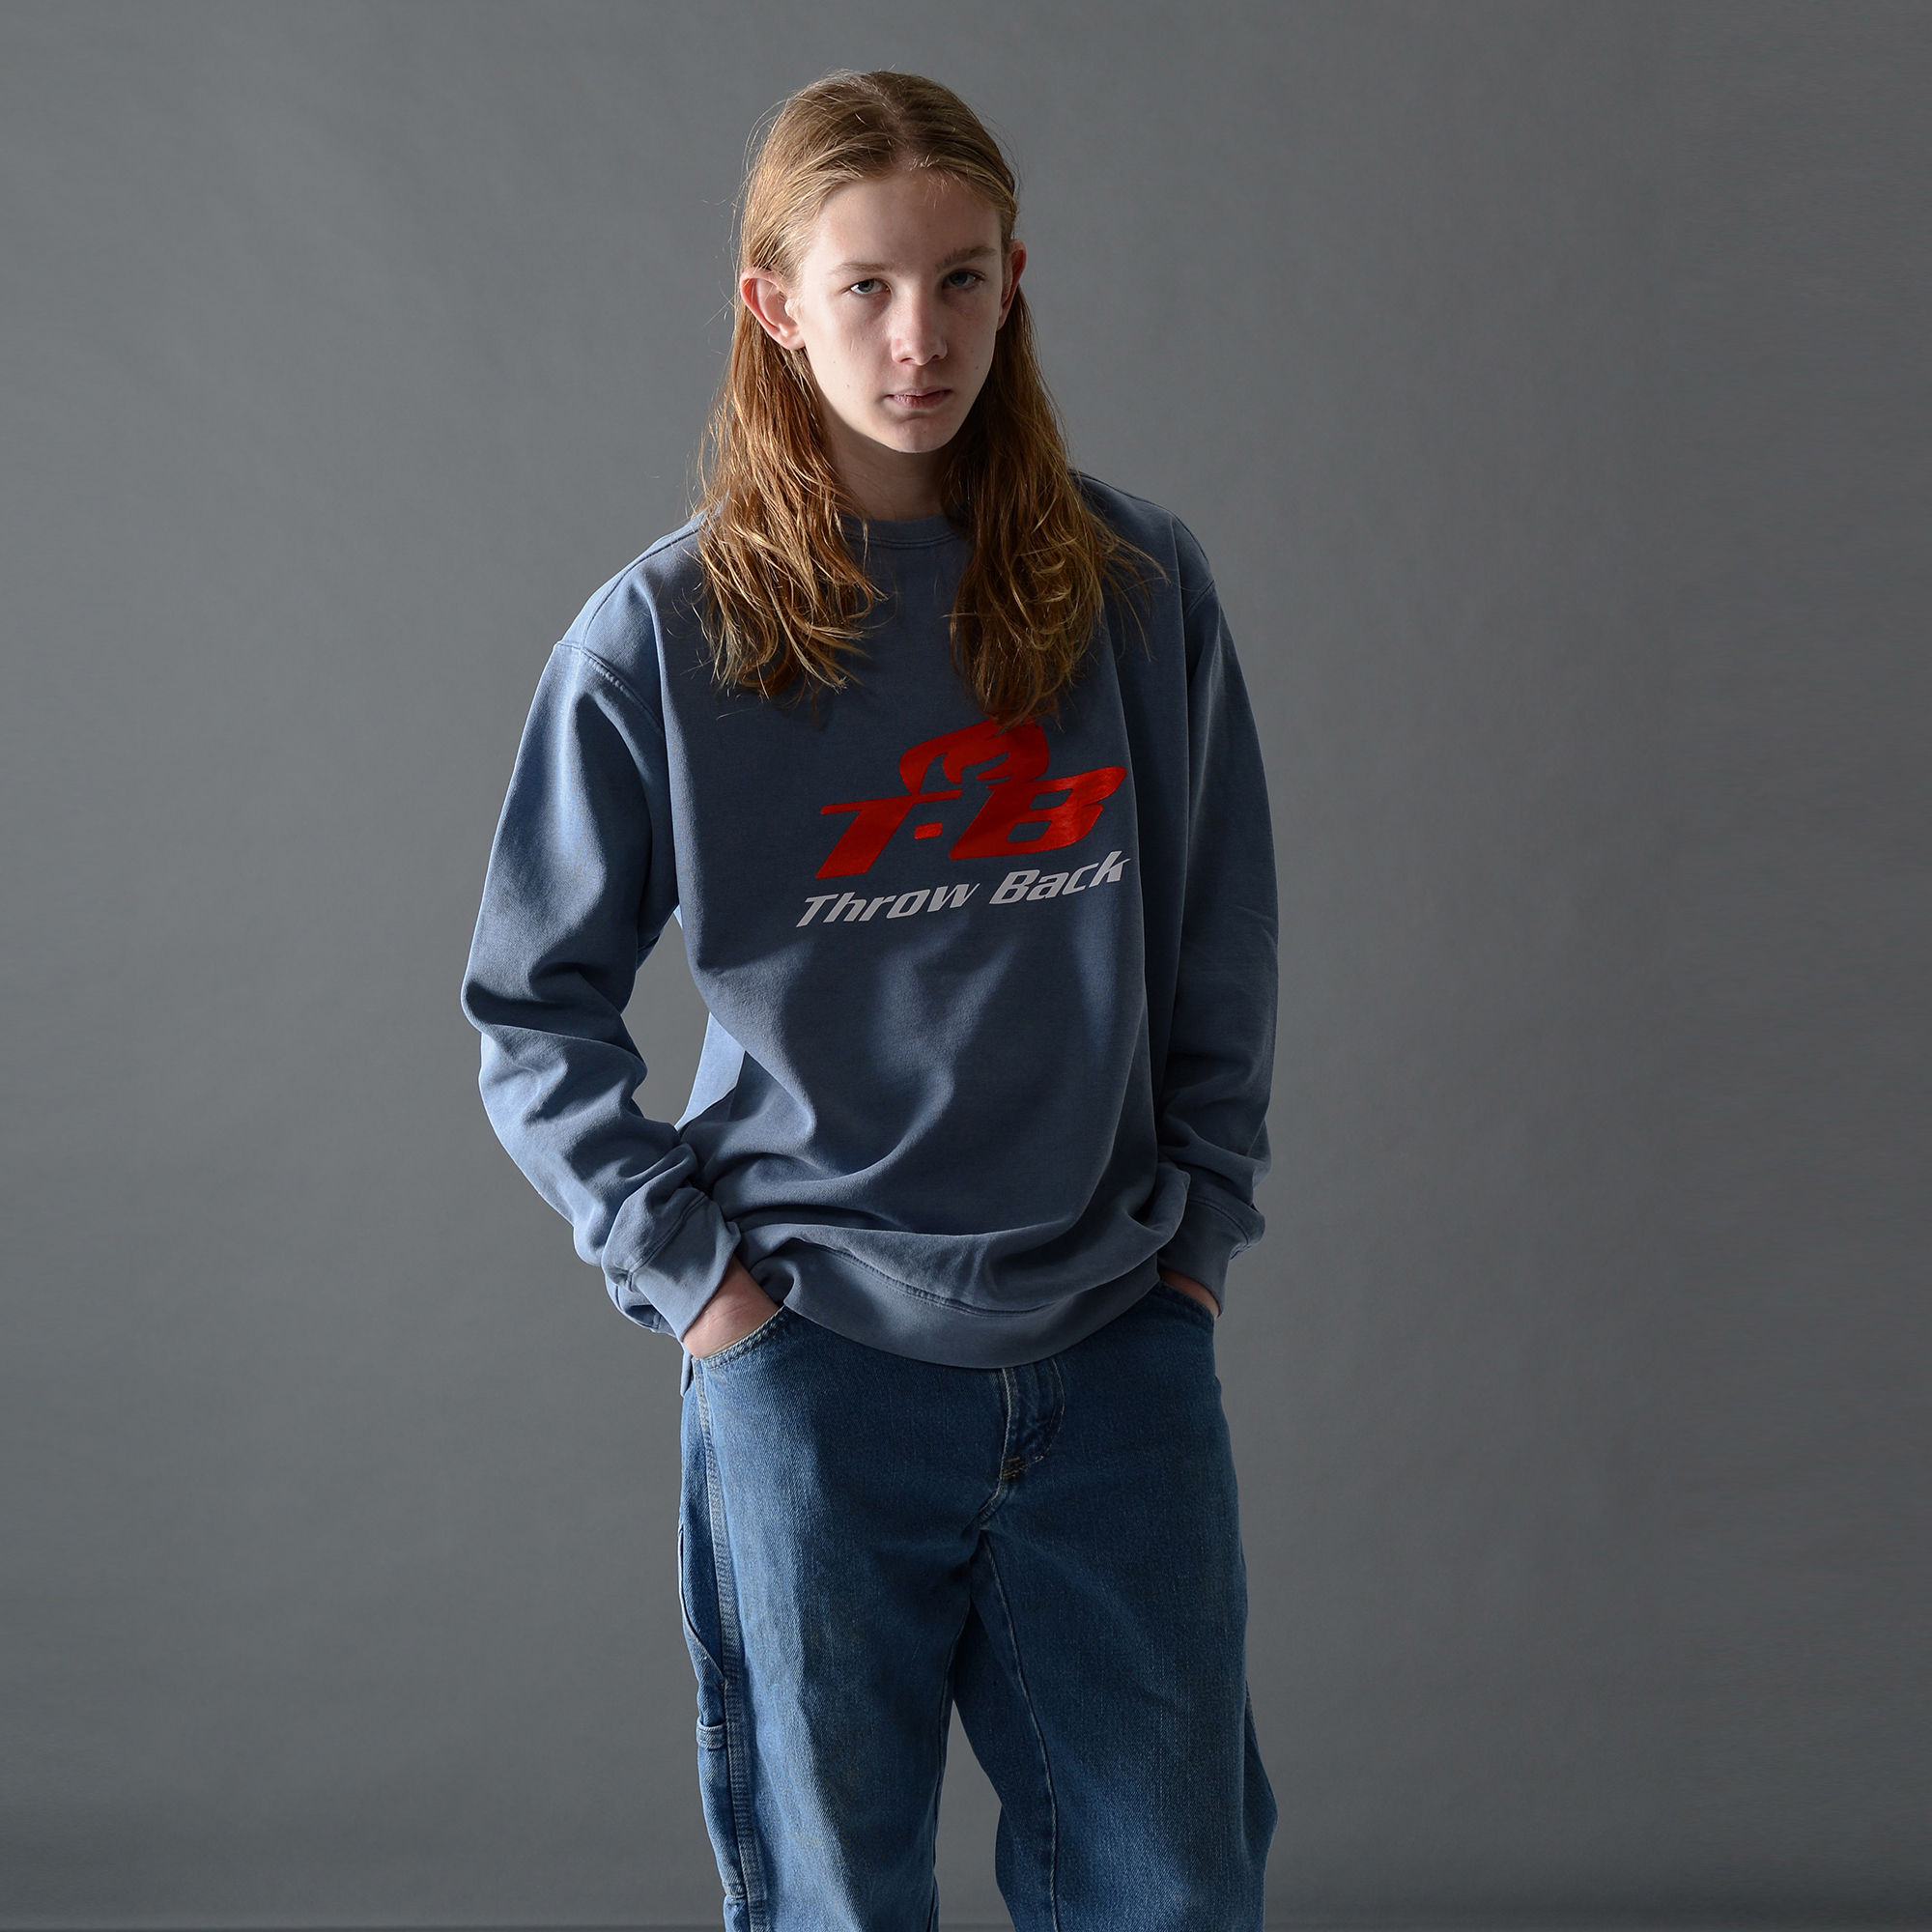 SS 2021 LOOK